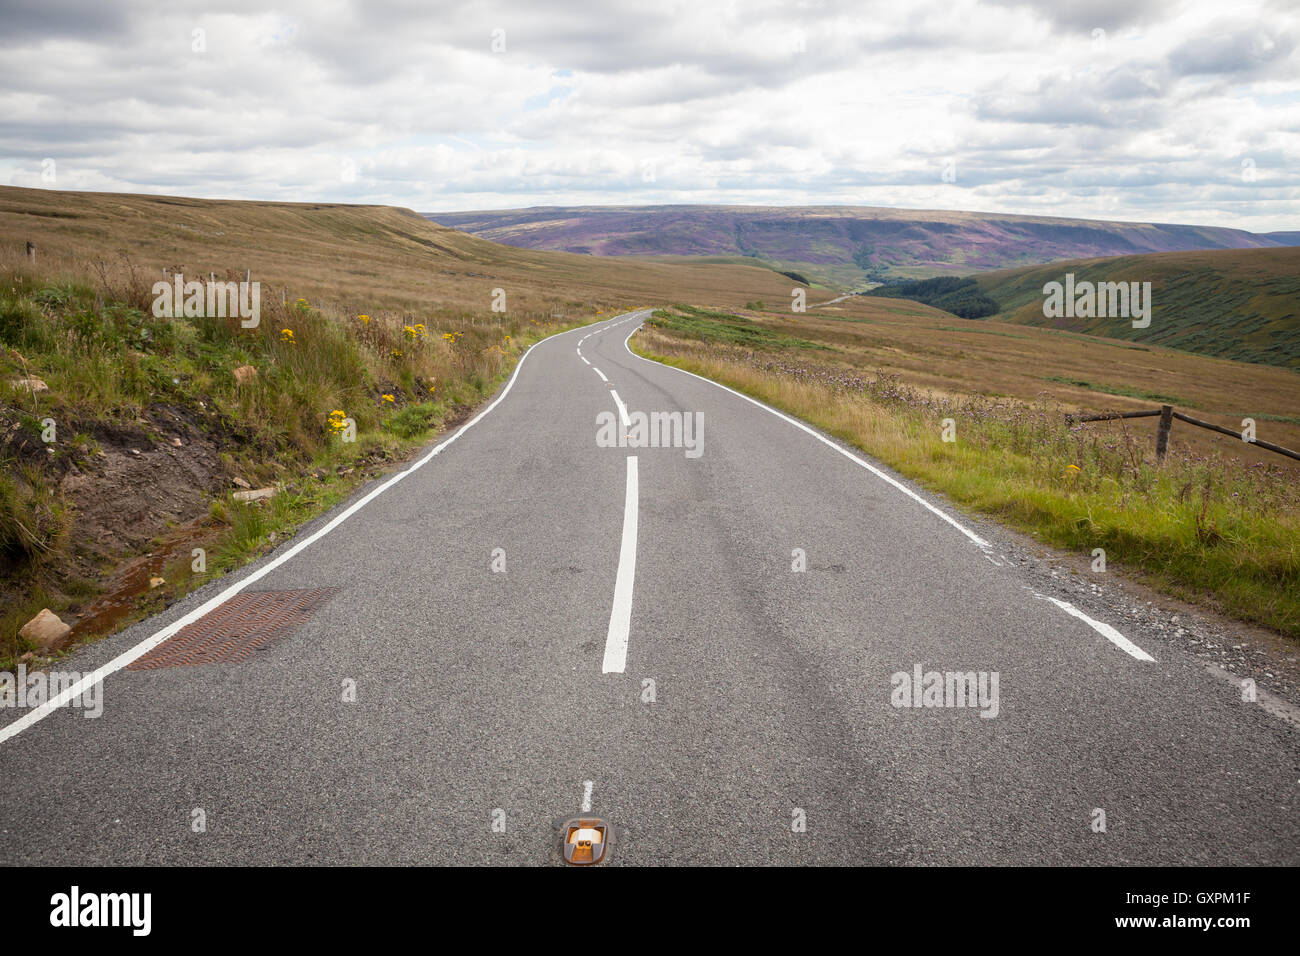 A centered road without cars rolling into the horizon with moorland on either side. - Stock Image